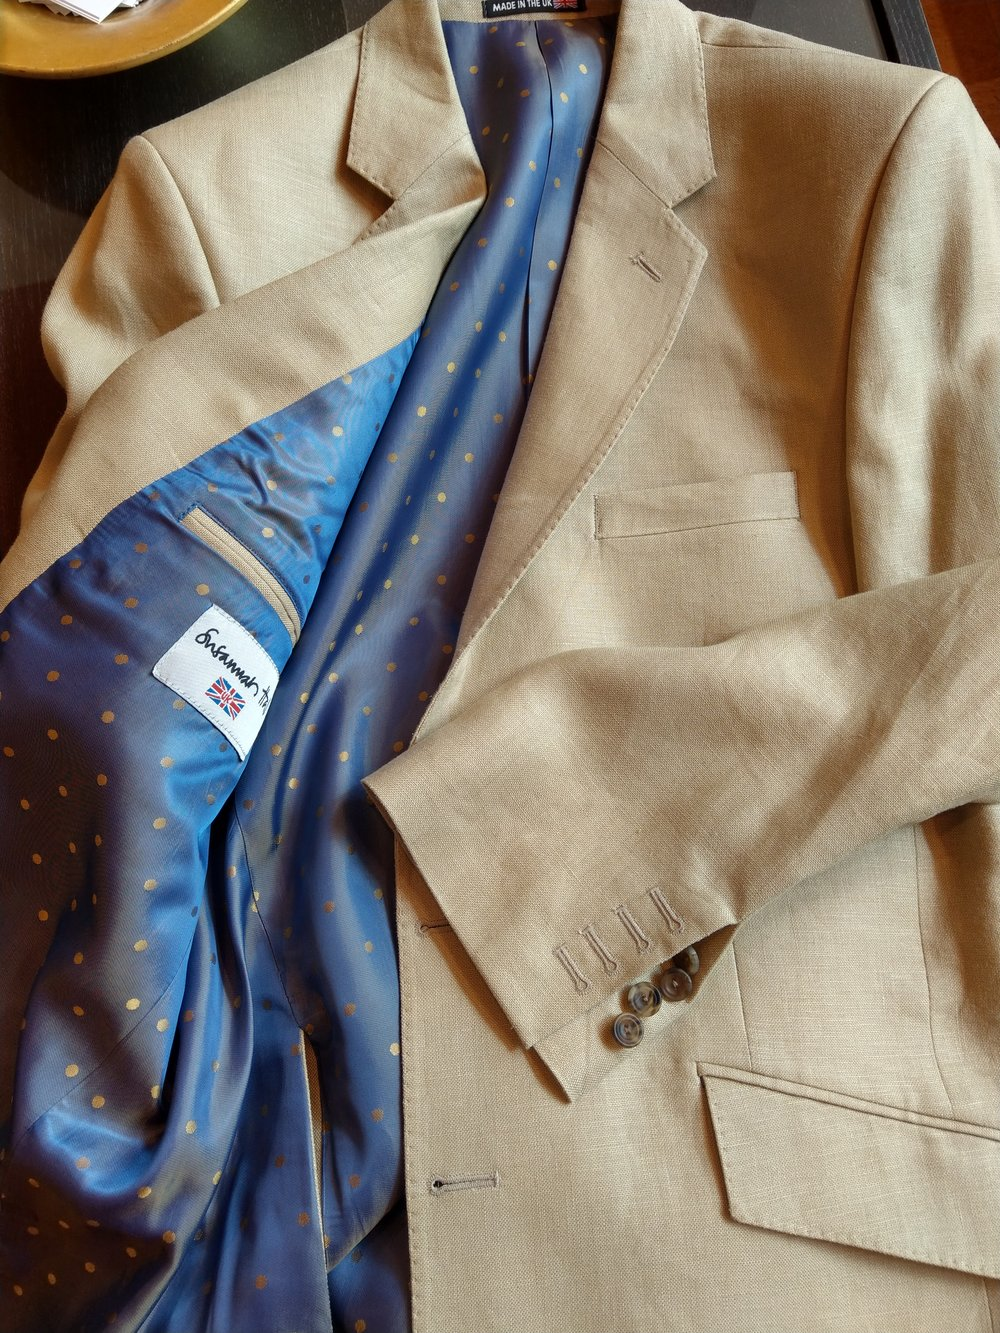 linen-jacket-bespoke-tailoring-susannah-hall-fabric-made-uk.jpg